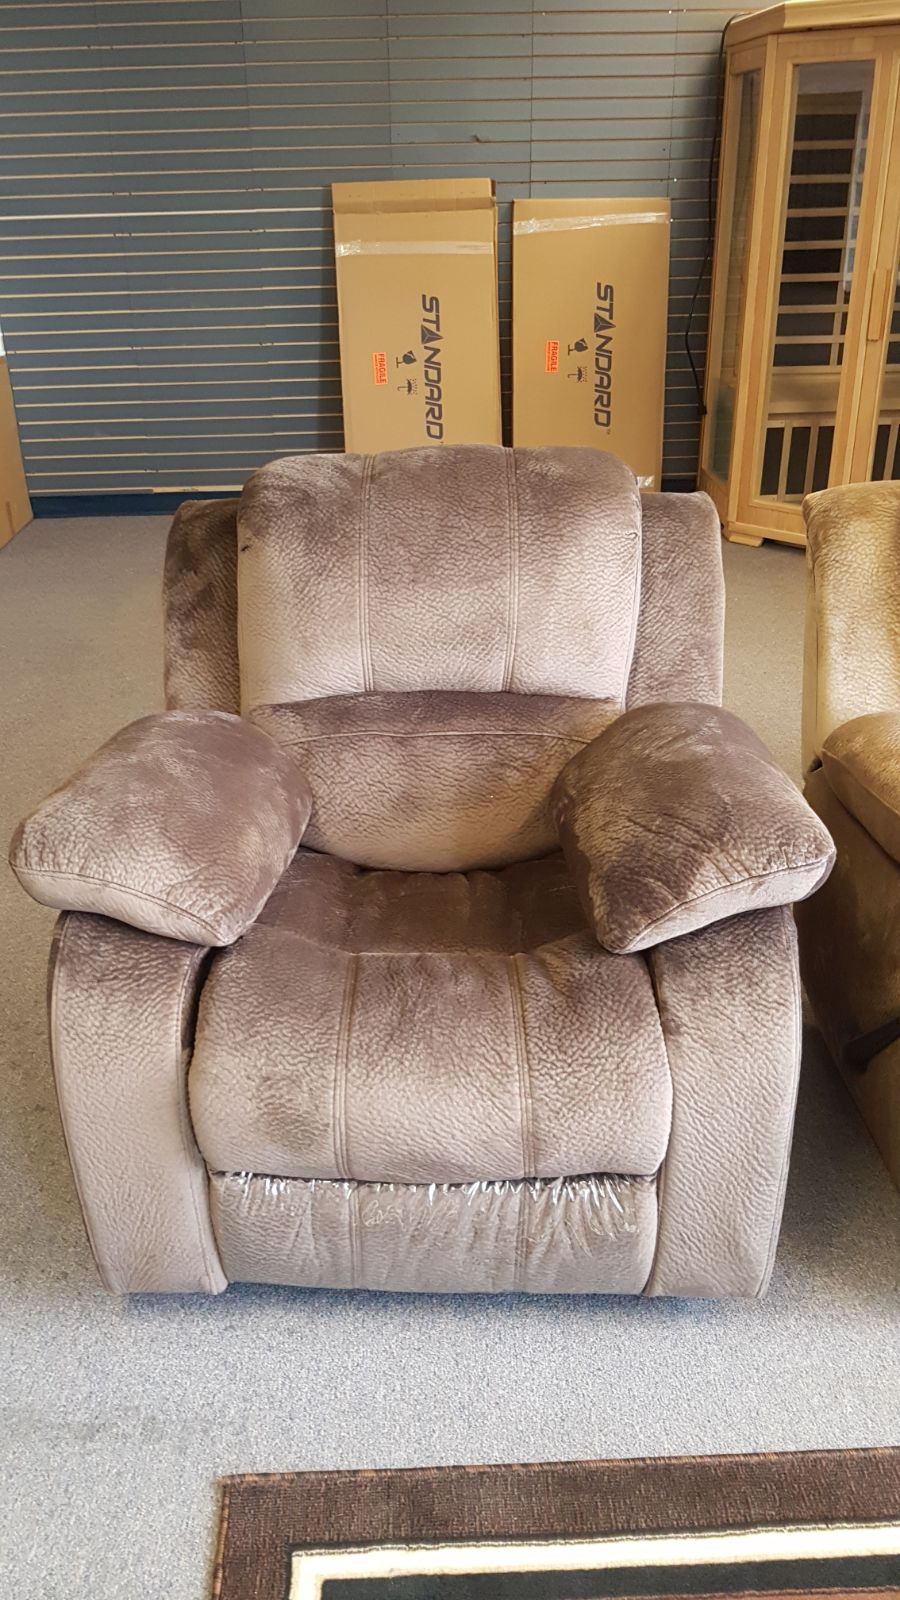 Rocking recliner furniture living room chair microfiber for Microfiber living room furniture